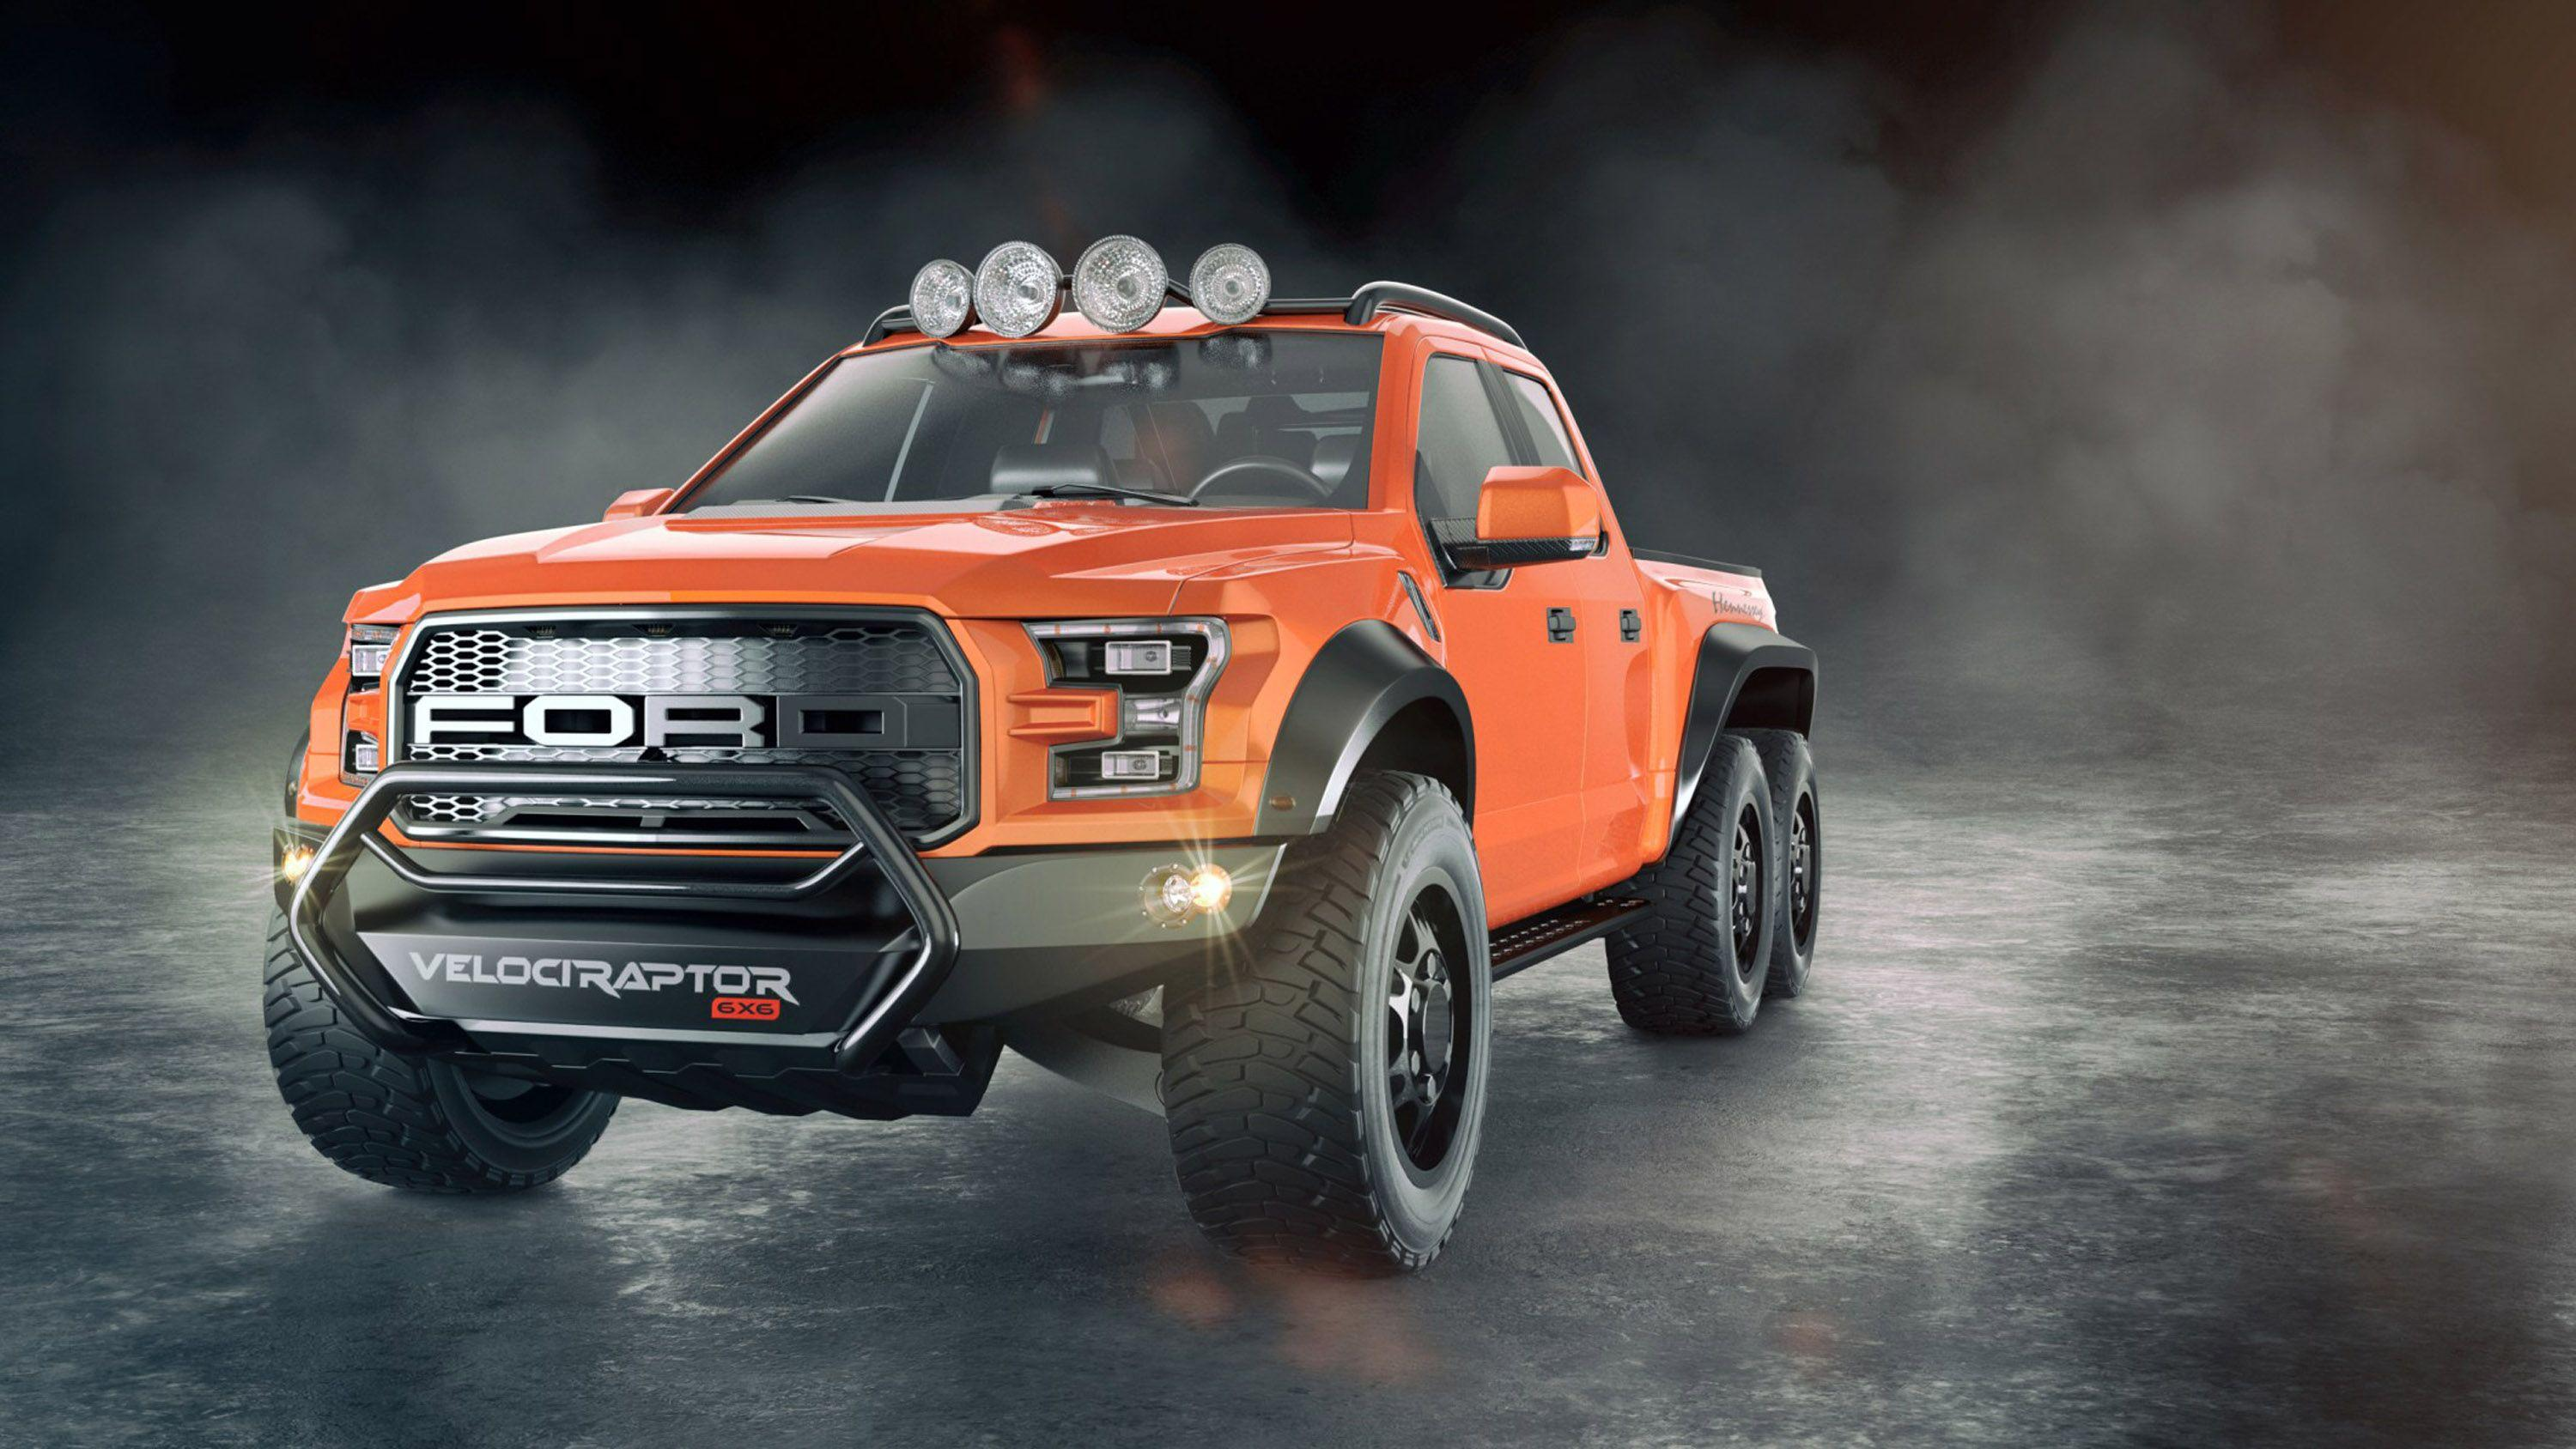 Wallpaper Ford F-250 VelociRaptor, Hennessey, HD, Automotive / Cars ...